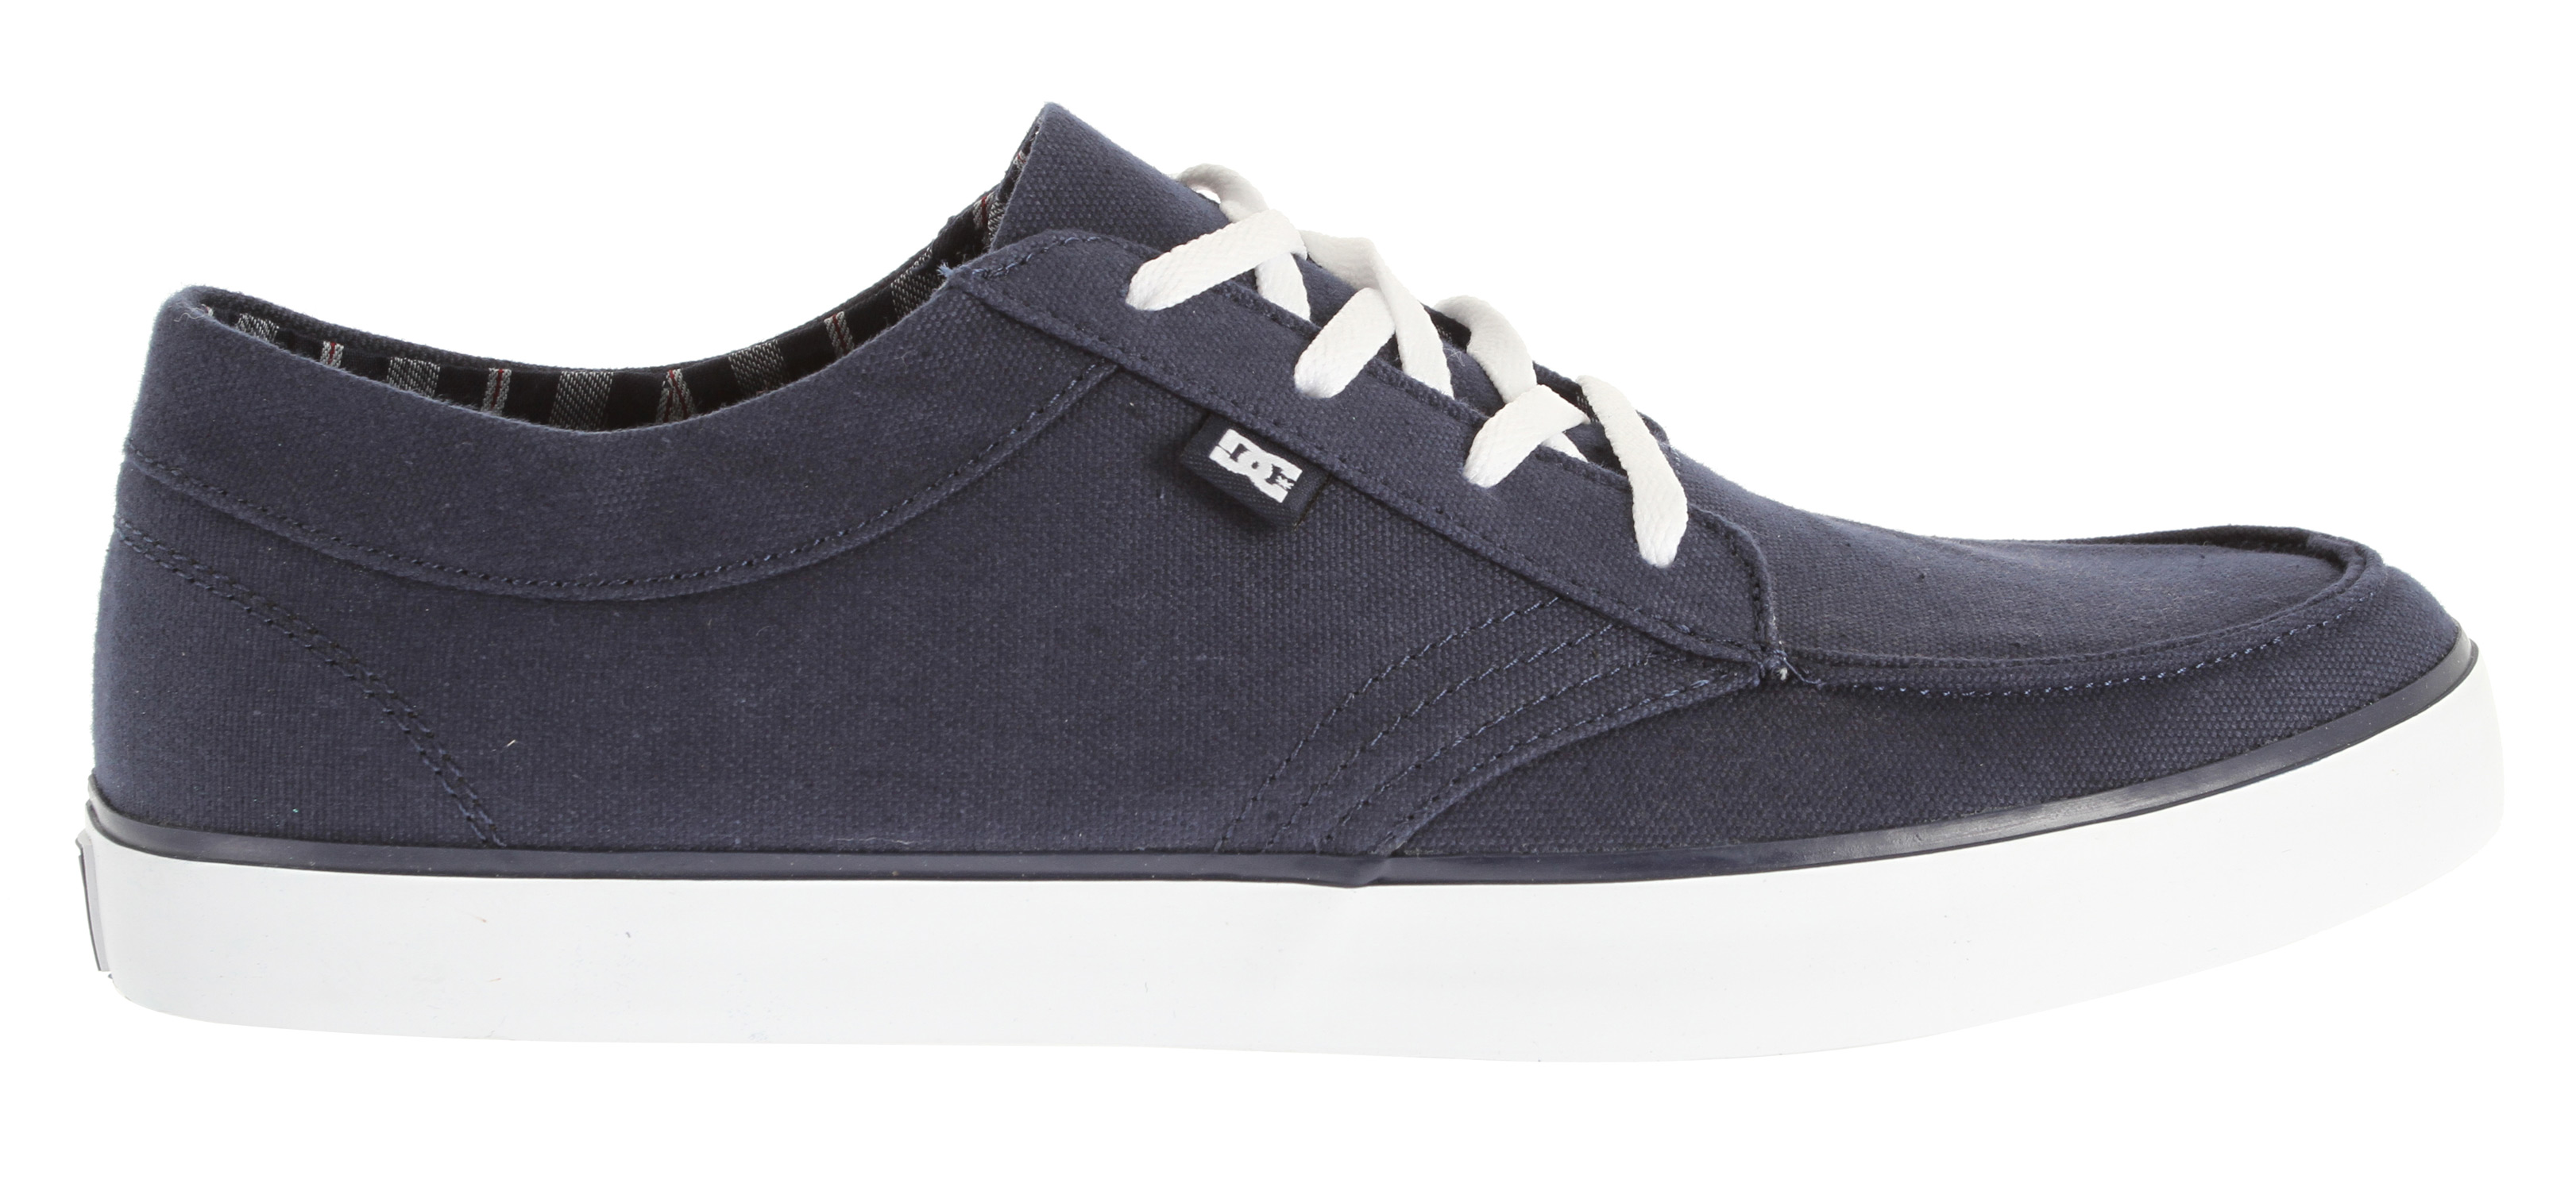 "Skateboard Key Features of the DC Standard TX Skate Shoes: Mock toe lace up Brushed twill or flannel herringbone textile upper Soft canvas lining DC's trademarked ""Pill Pattern"" outsole Does not come in box - $31.95"